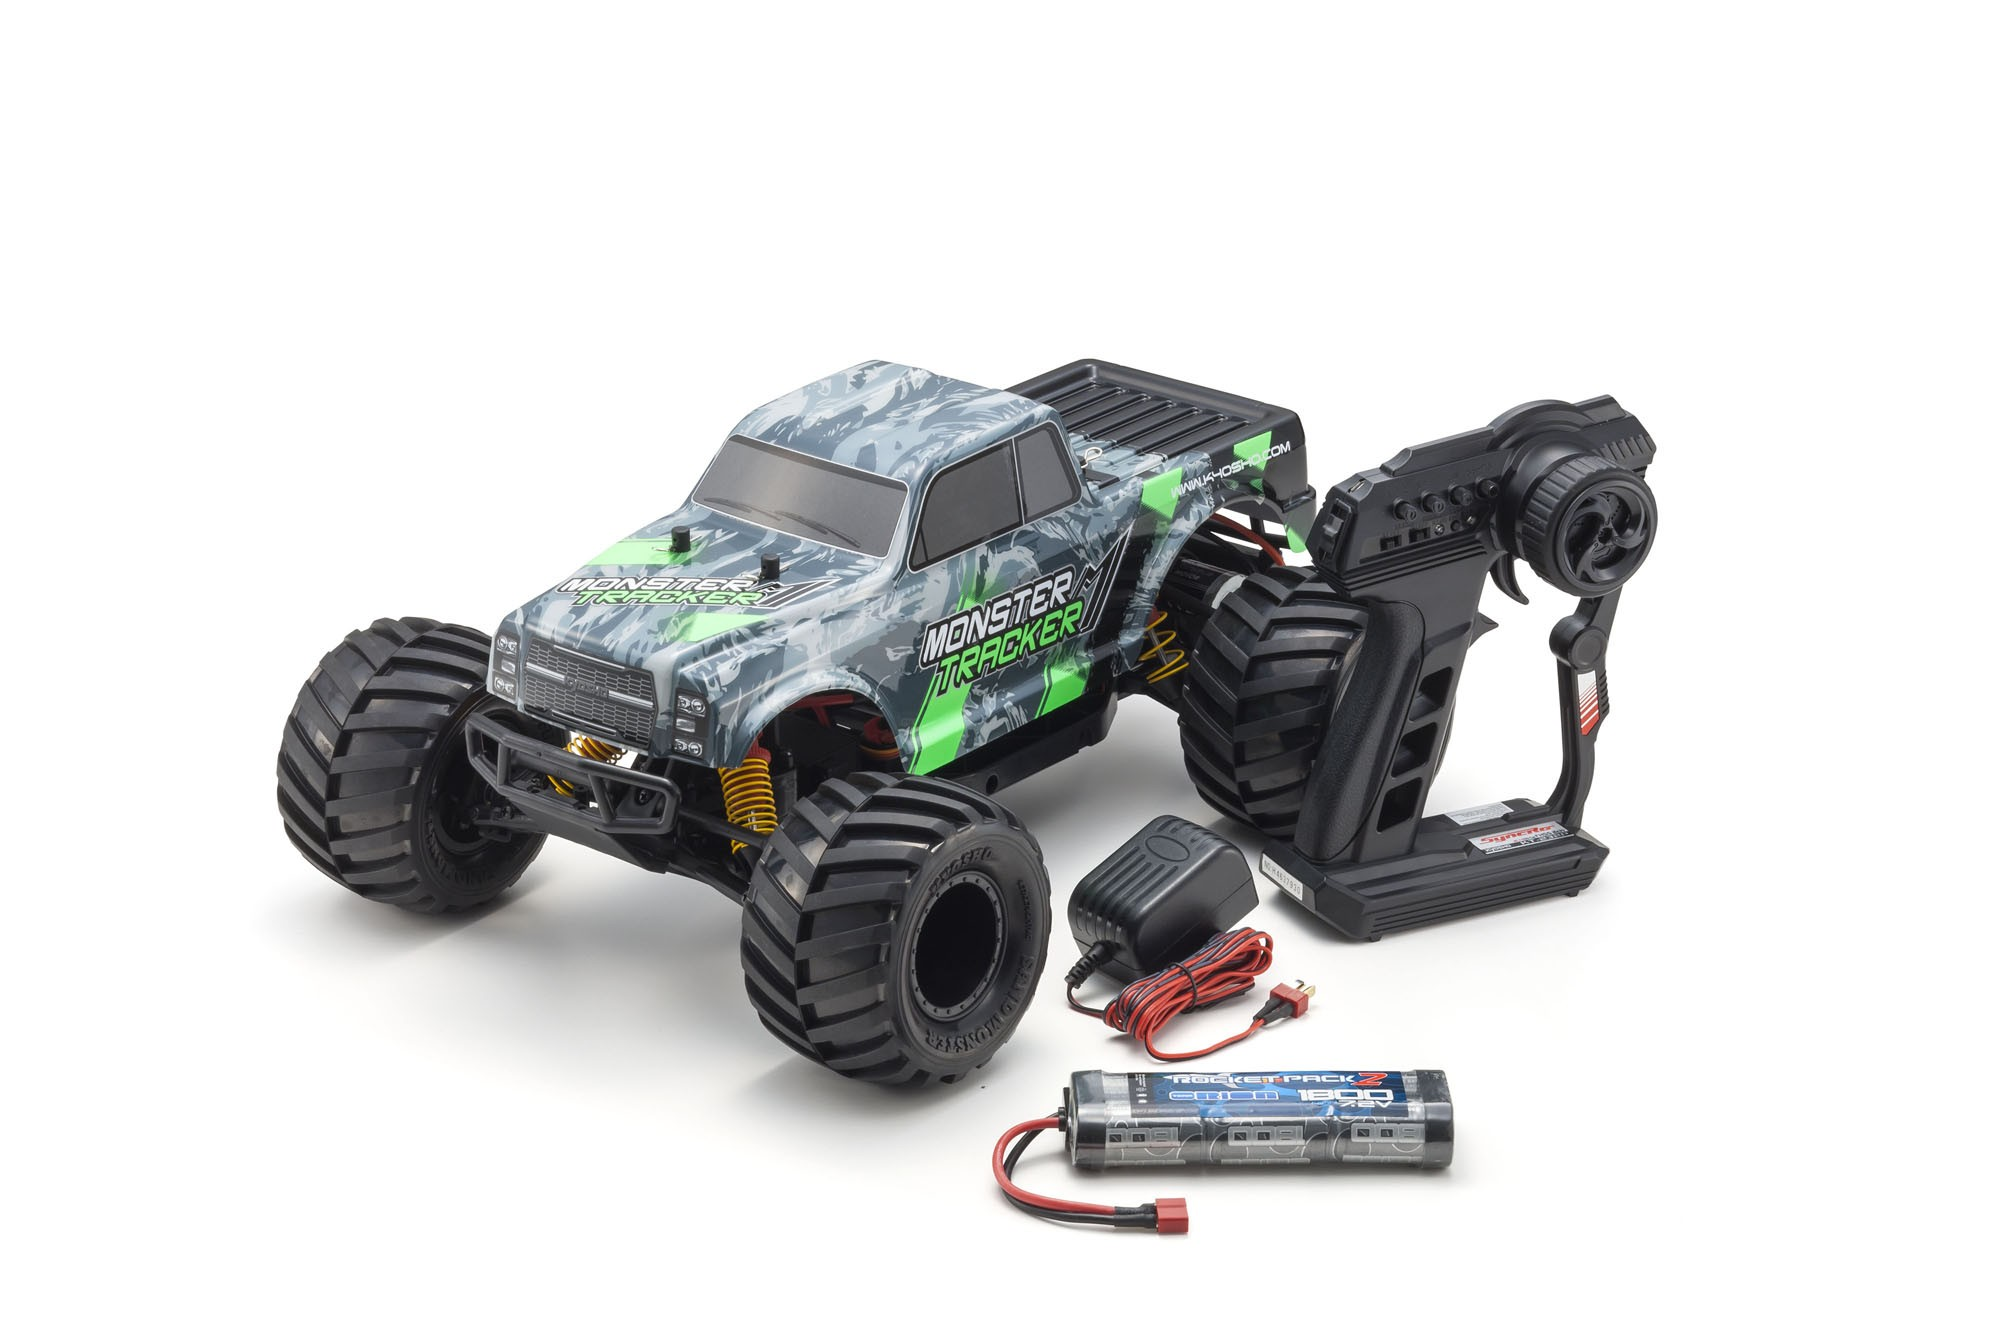 KYOSHO MONSTER TRACKER 1:10 EP (KT232P) - T1 VERT READYSET, 34403T1B